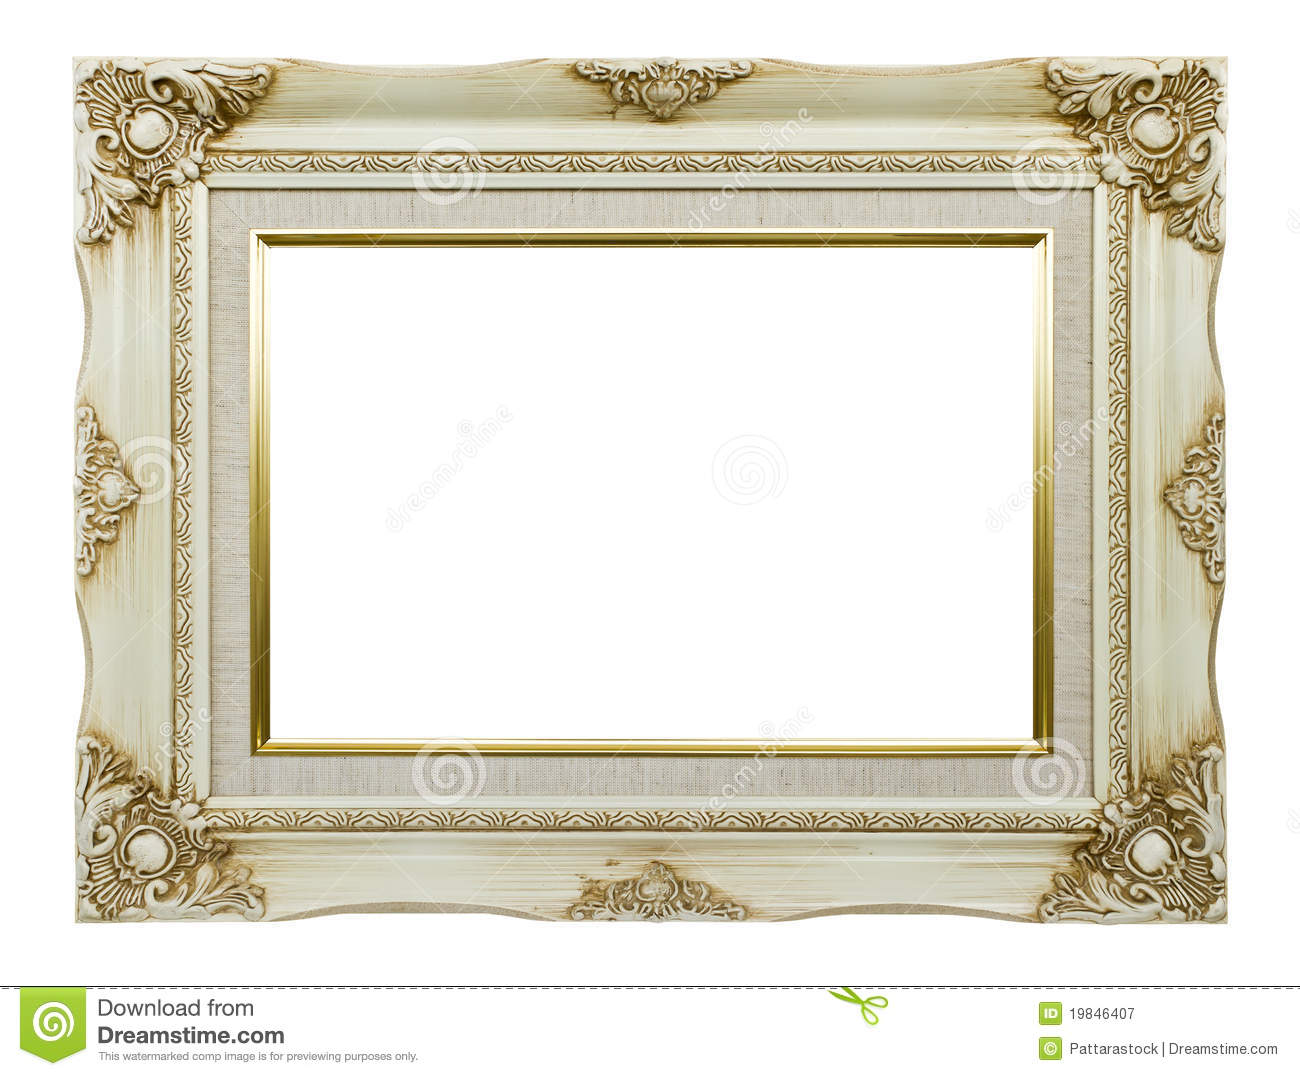 Vintage white picture frame isolated on white background.